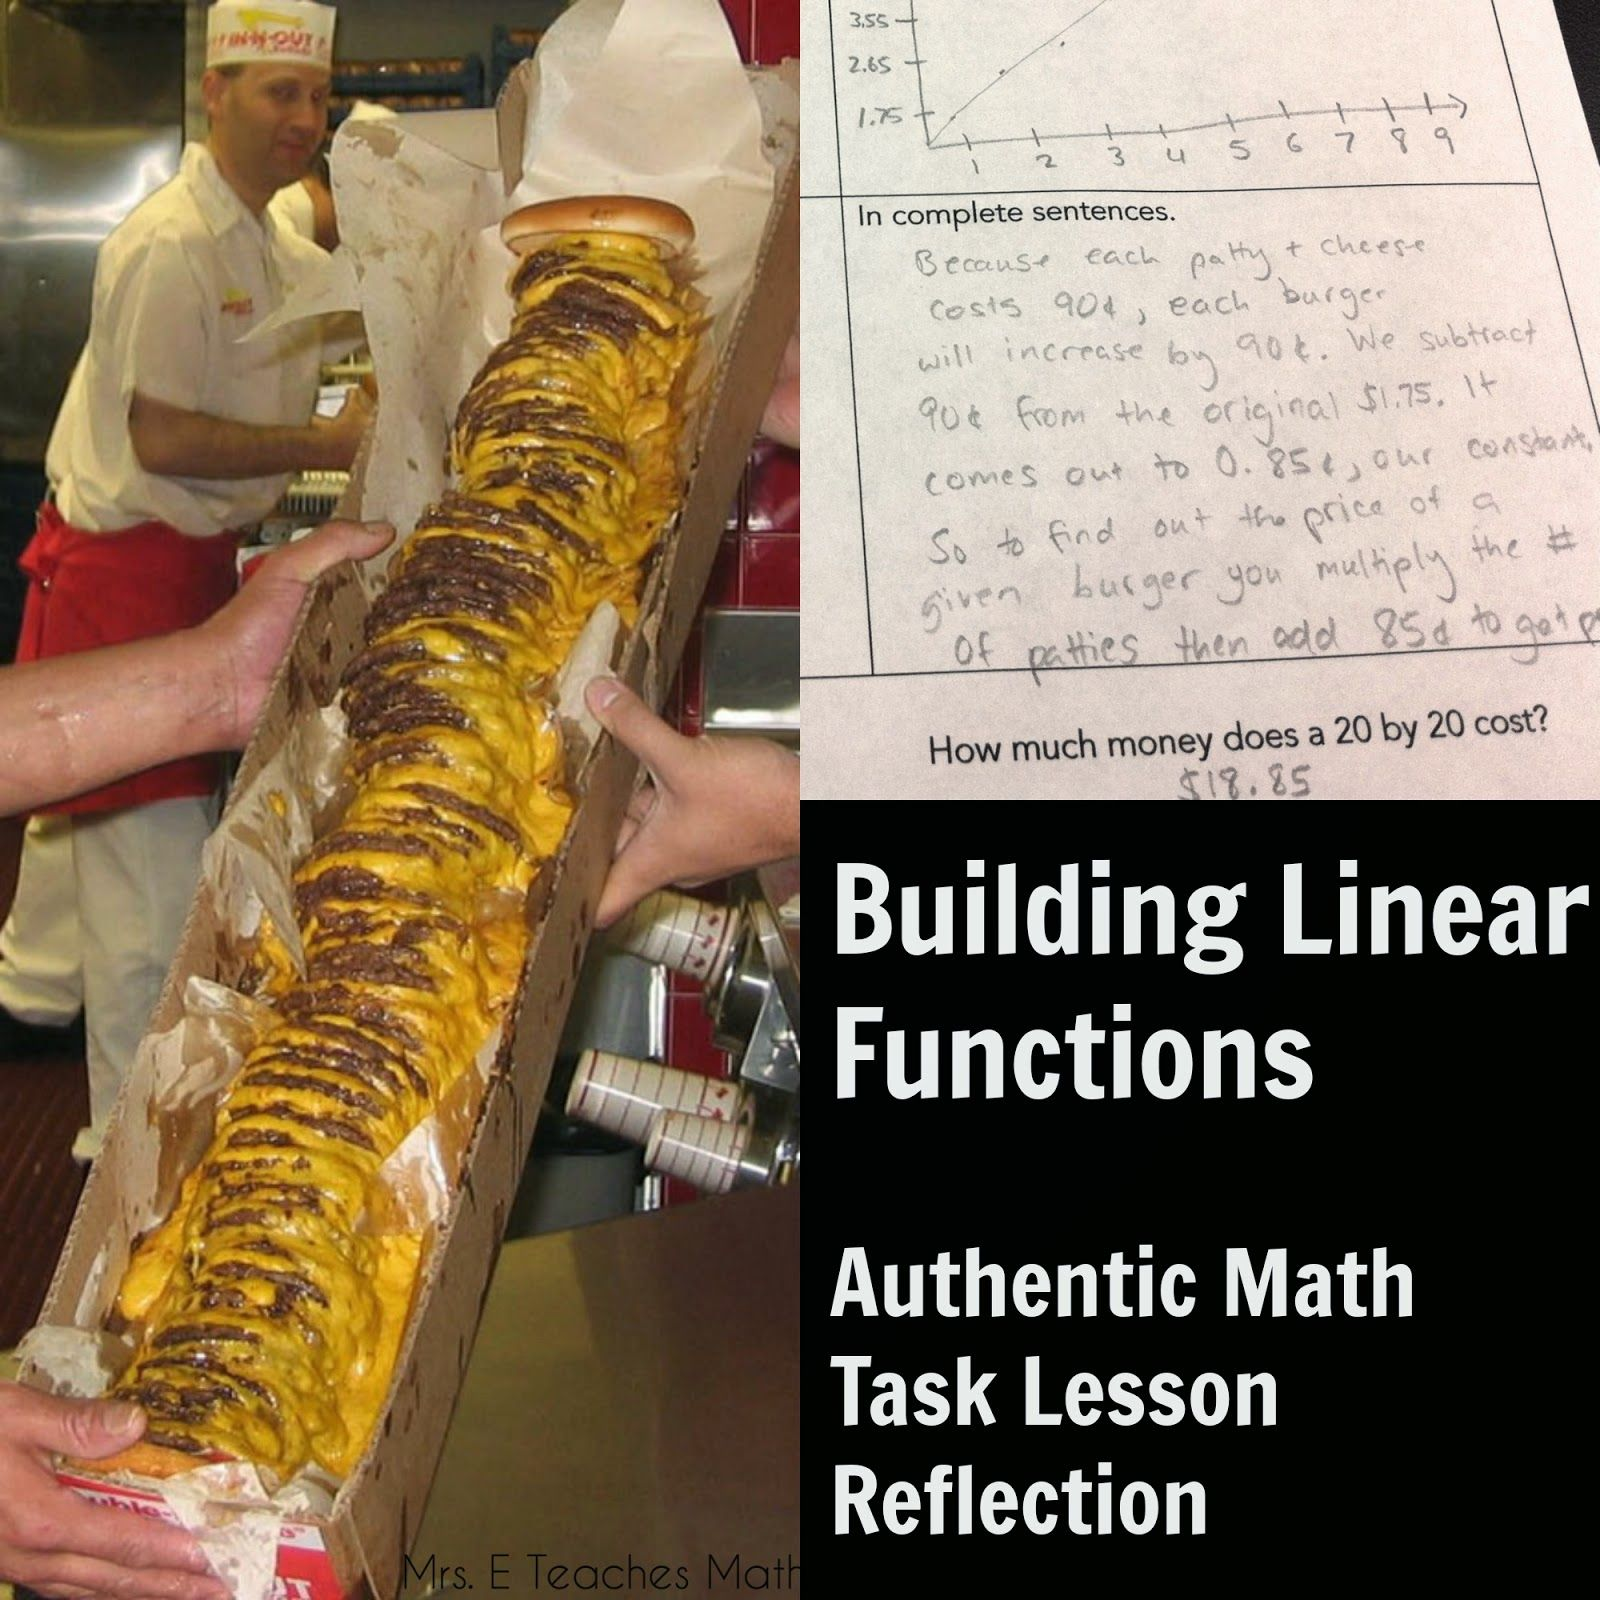 Building Linear Functions